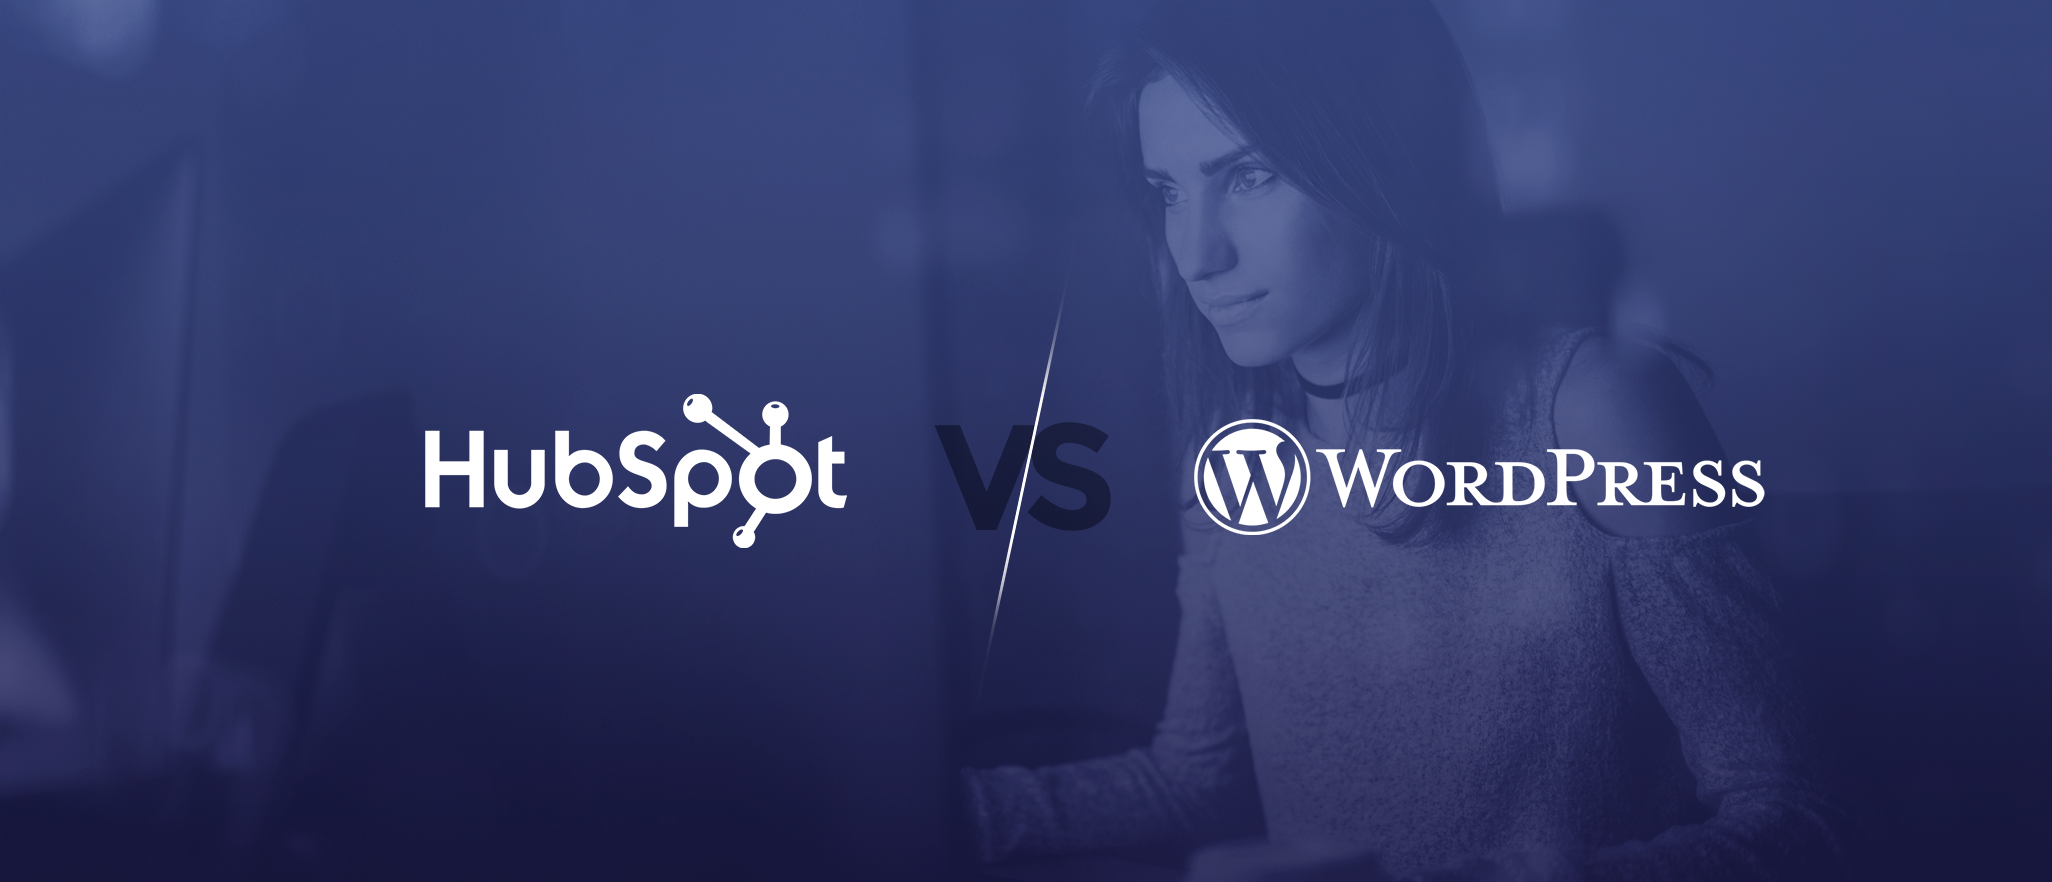 HubSpot CMS x WordPress - O Guia Definitivo